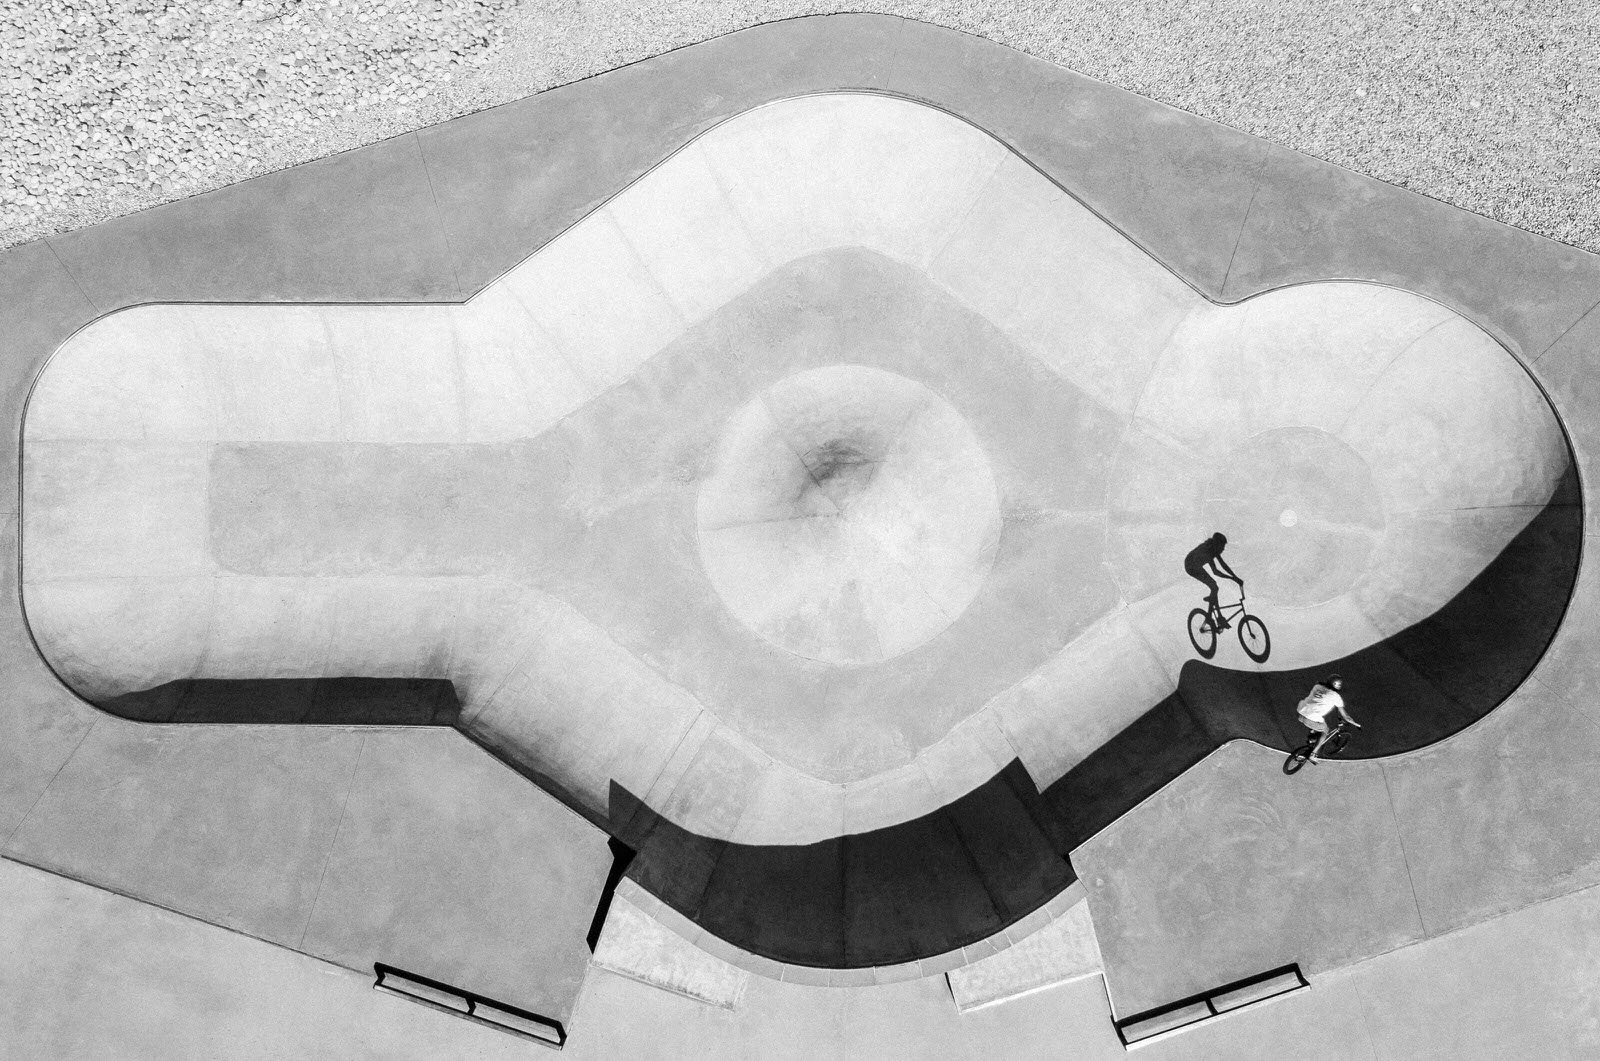 Best of Instagram by SanDisk: Baptiste Fauchille, France, with a shot from a buddies trip with a business goal showing Alex Bibollet's shadow in the bowl of Fillinges, France.